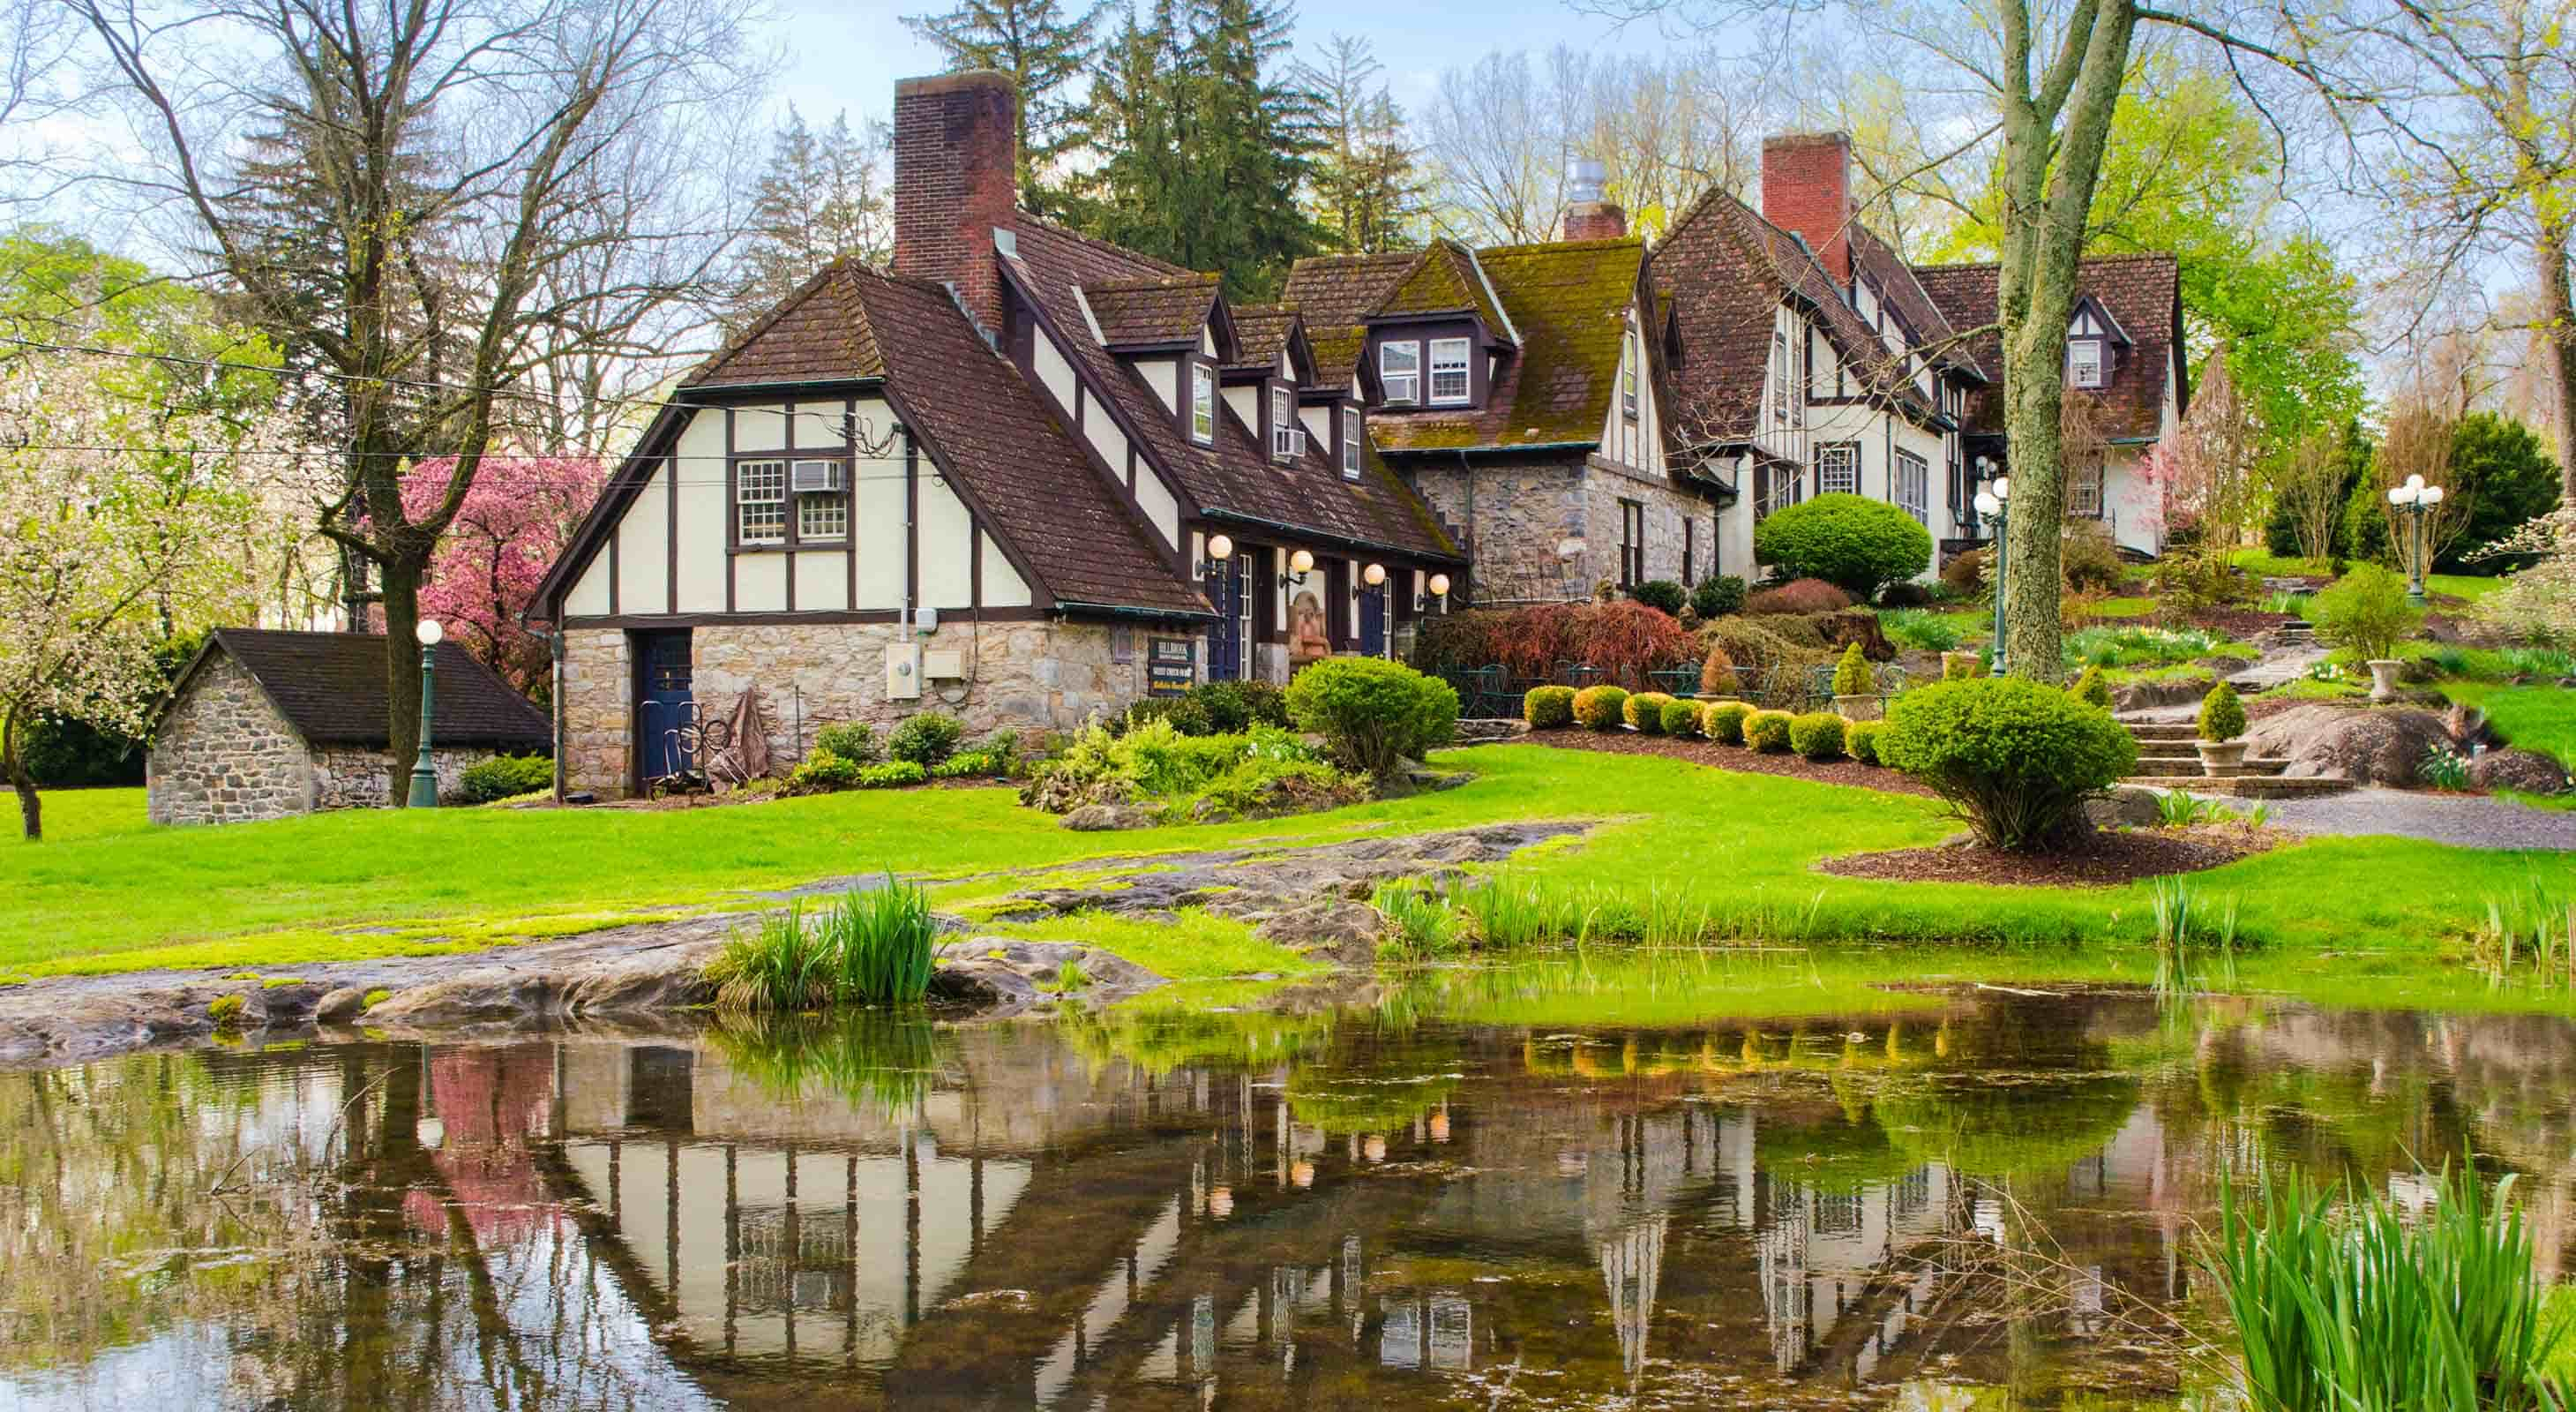 Exterior of Hillbrook Inn with a pond in the foreground - B&B Marketing Client